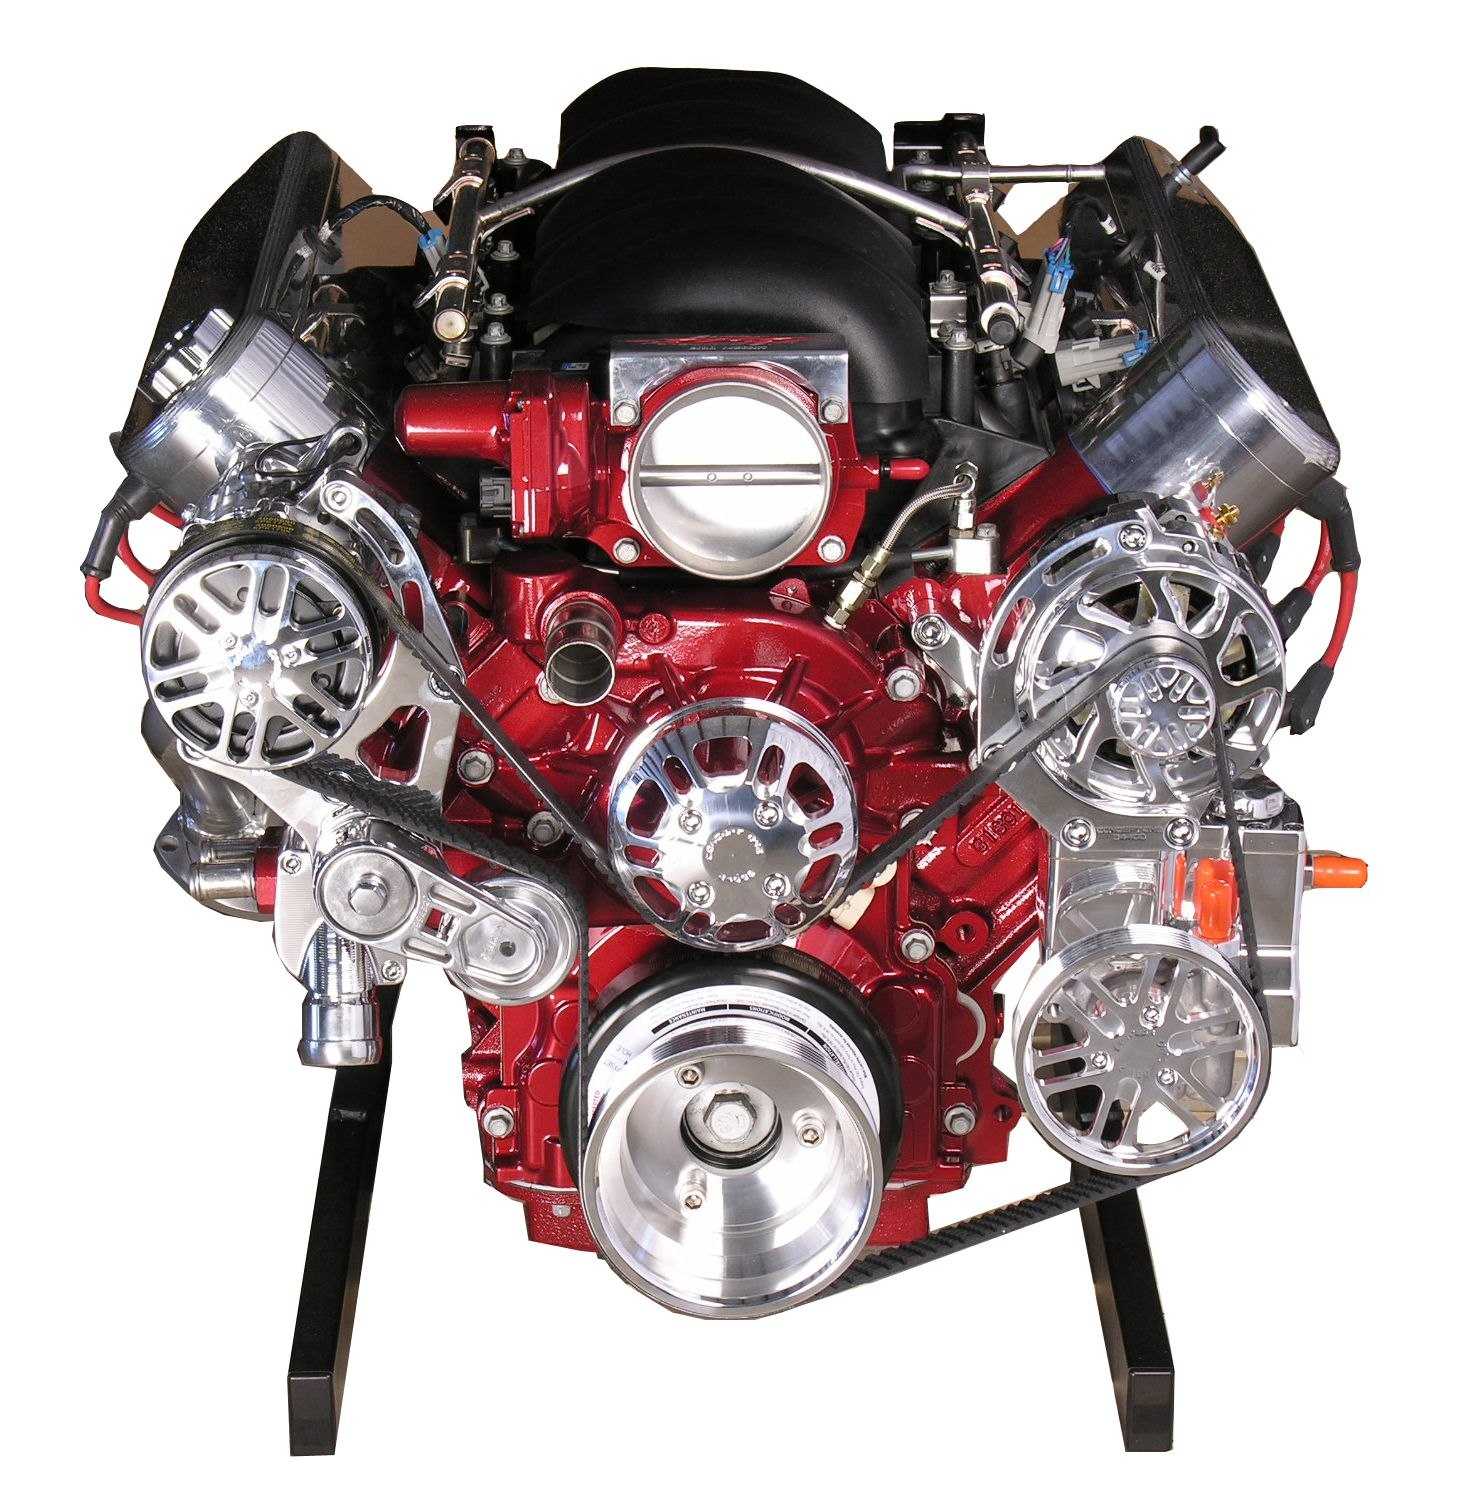 A C Adb Bdbbdcc Ffa A D A on Supercharged Chevy 383 Crate Engines